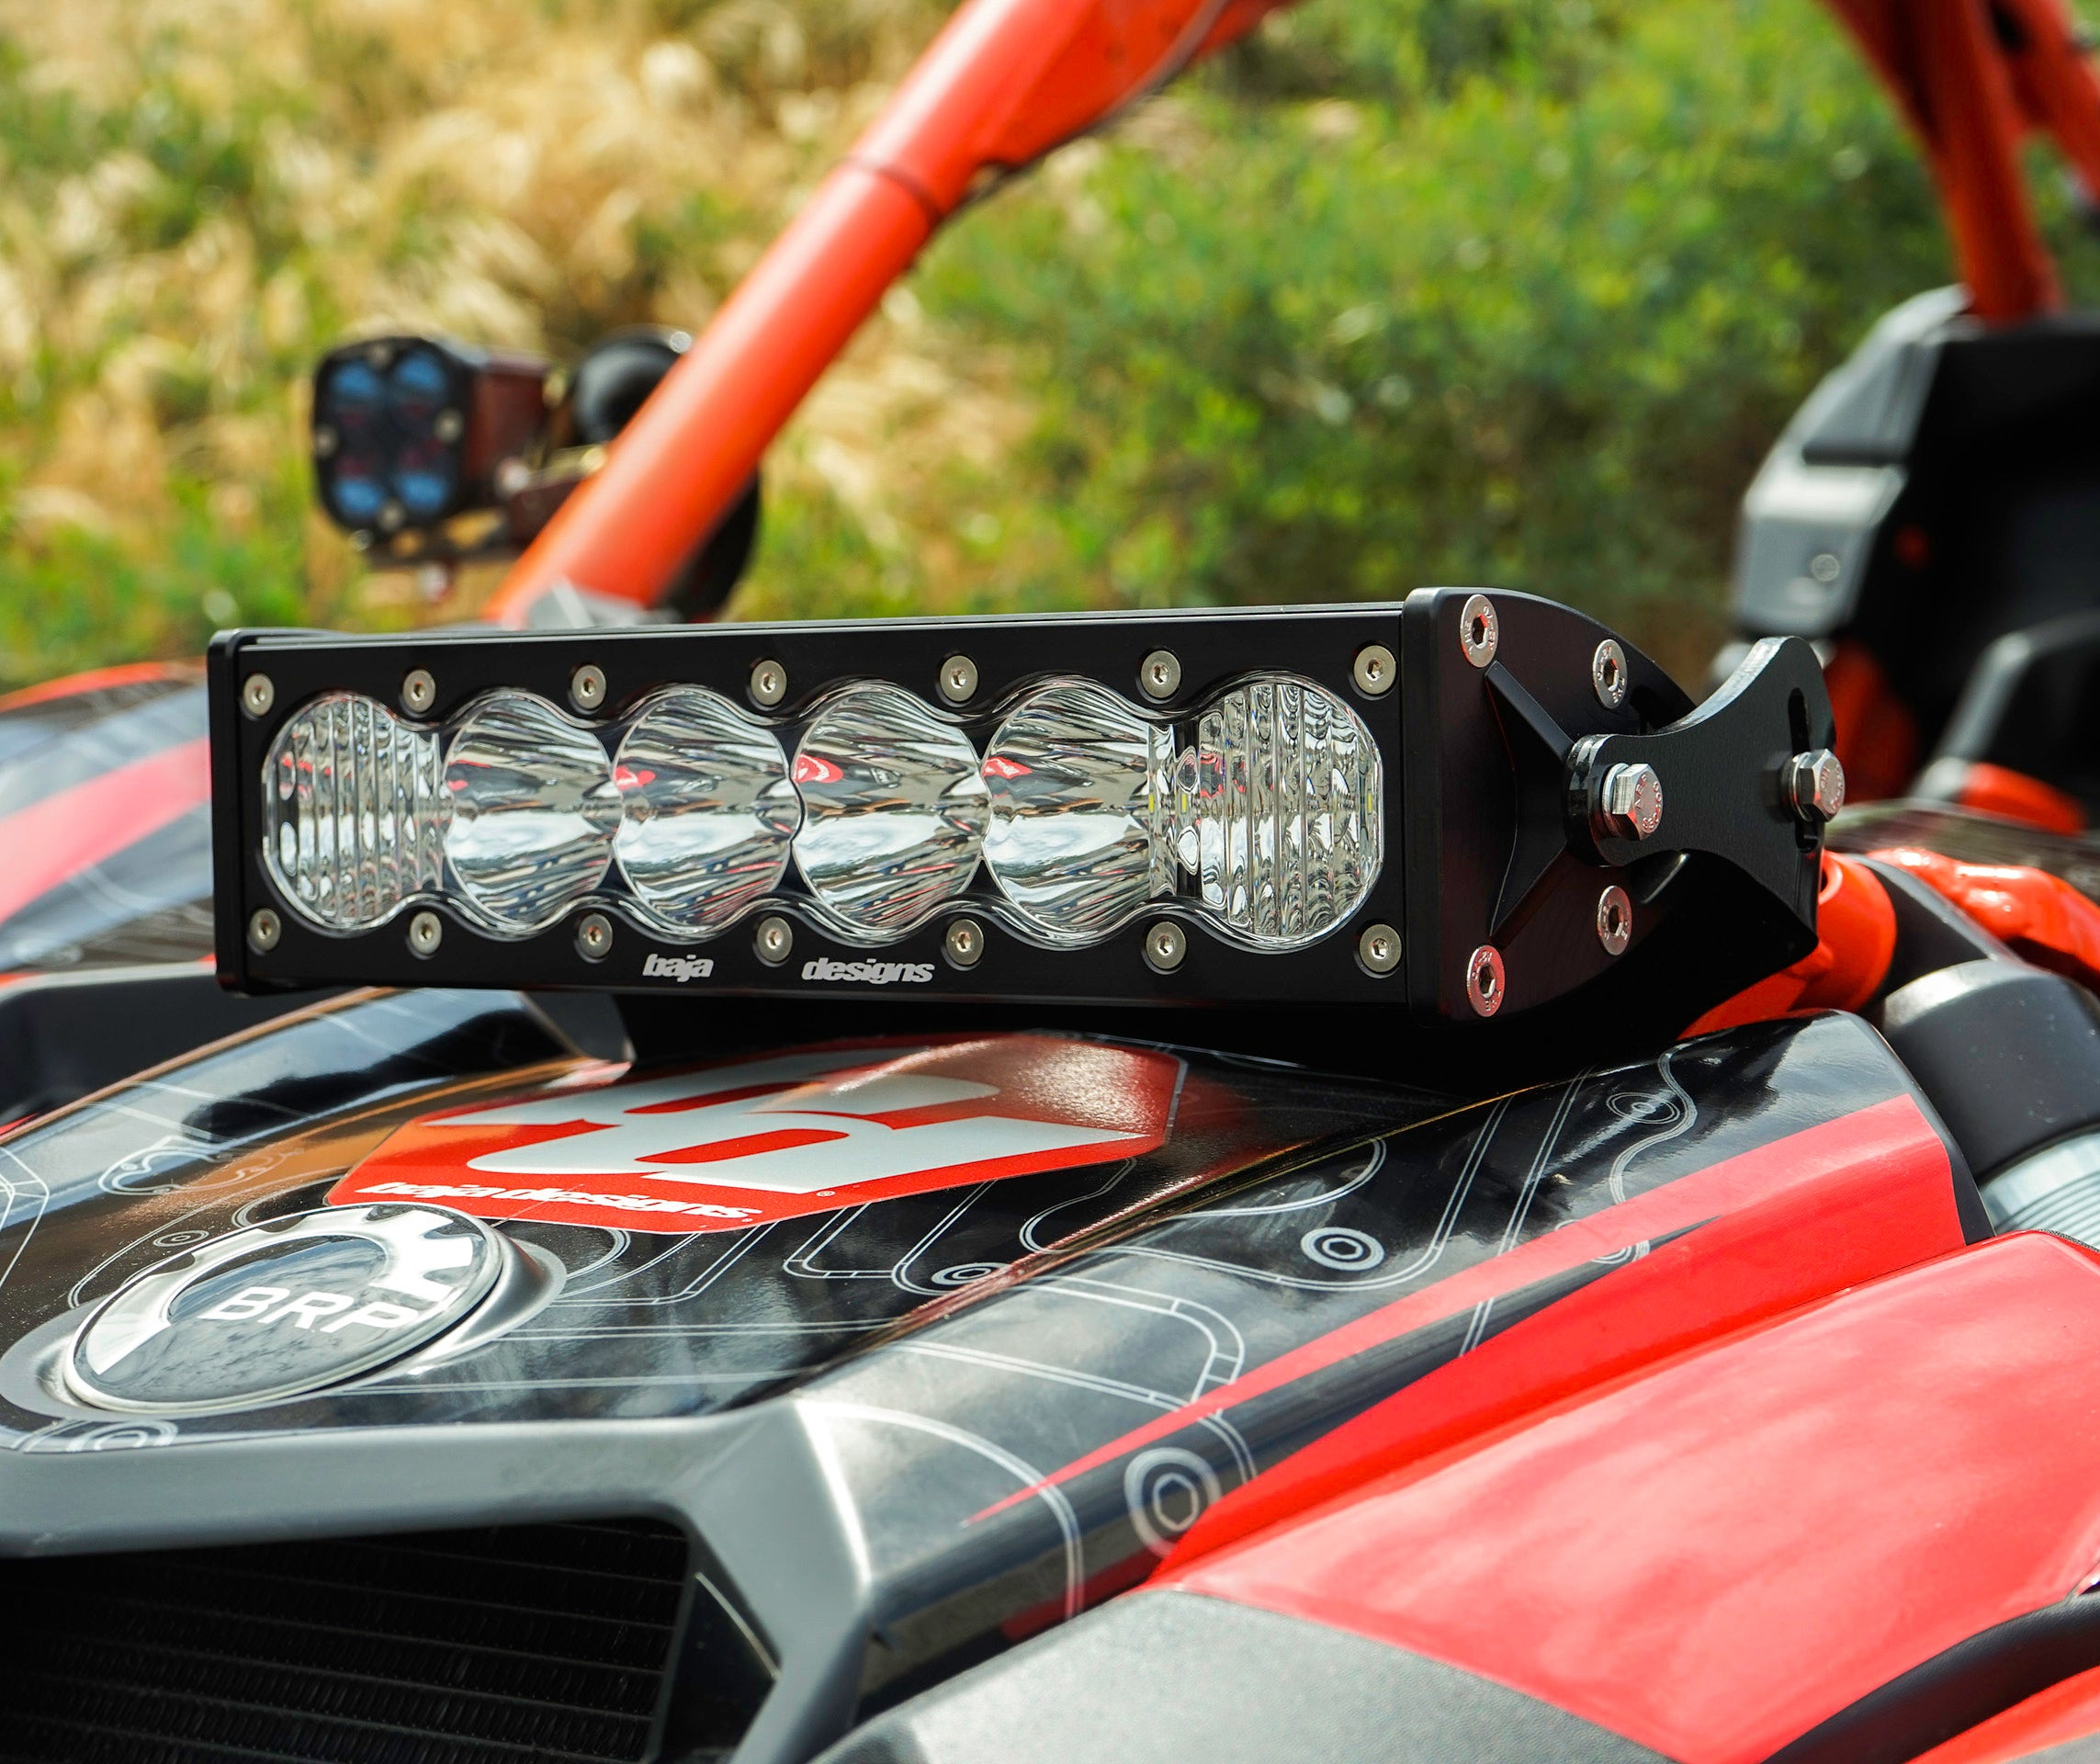 "Can-Am X3 OnX6+10"" Light Bar And Shock Mount Kit by Baja Designs Separate yourself from the pack with the Baja Designs Can-Am OnX6 Shock Mount. This kit includes a 10"" OnX6 light bar and mount that easily bolts up to the factory shock tower and keeps the light stable at high speeds. This kit is ideal for someone looking to gain forward projecting light while maintaining the X3's aggressive styling."